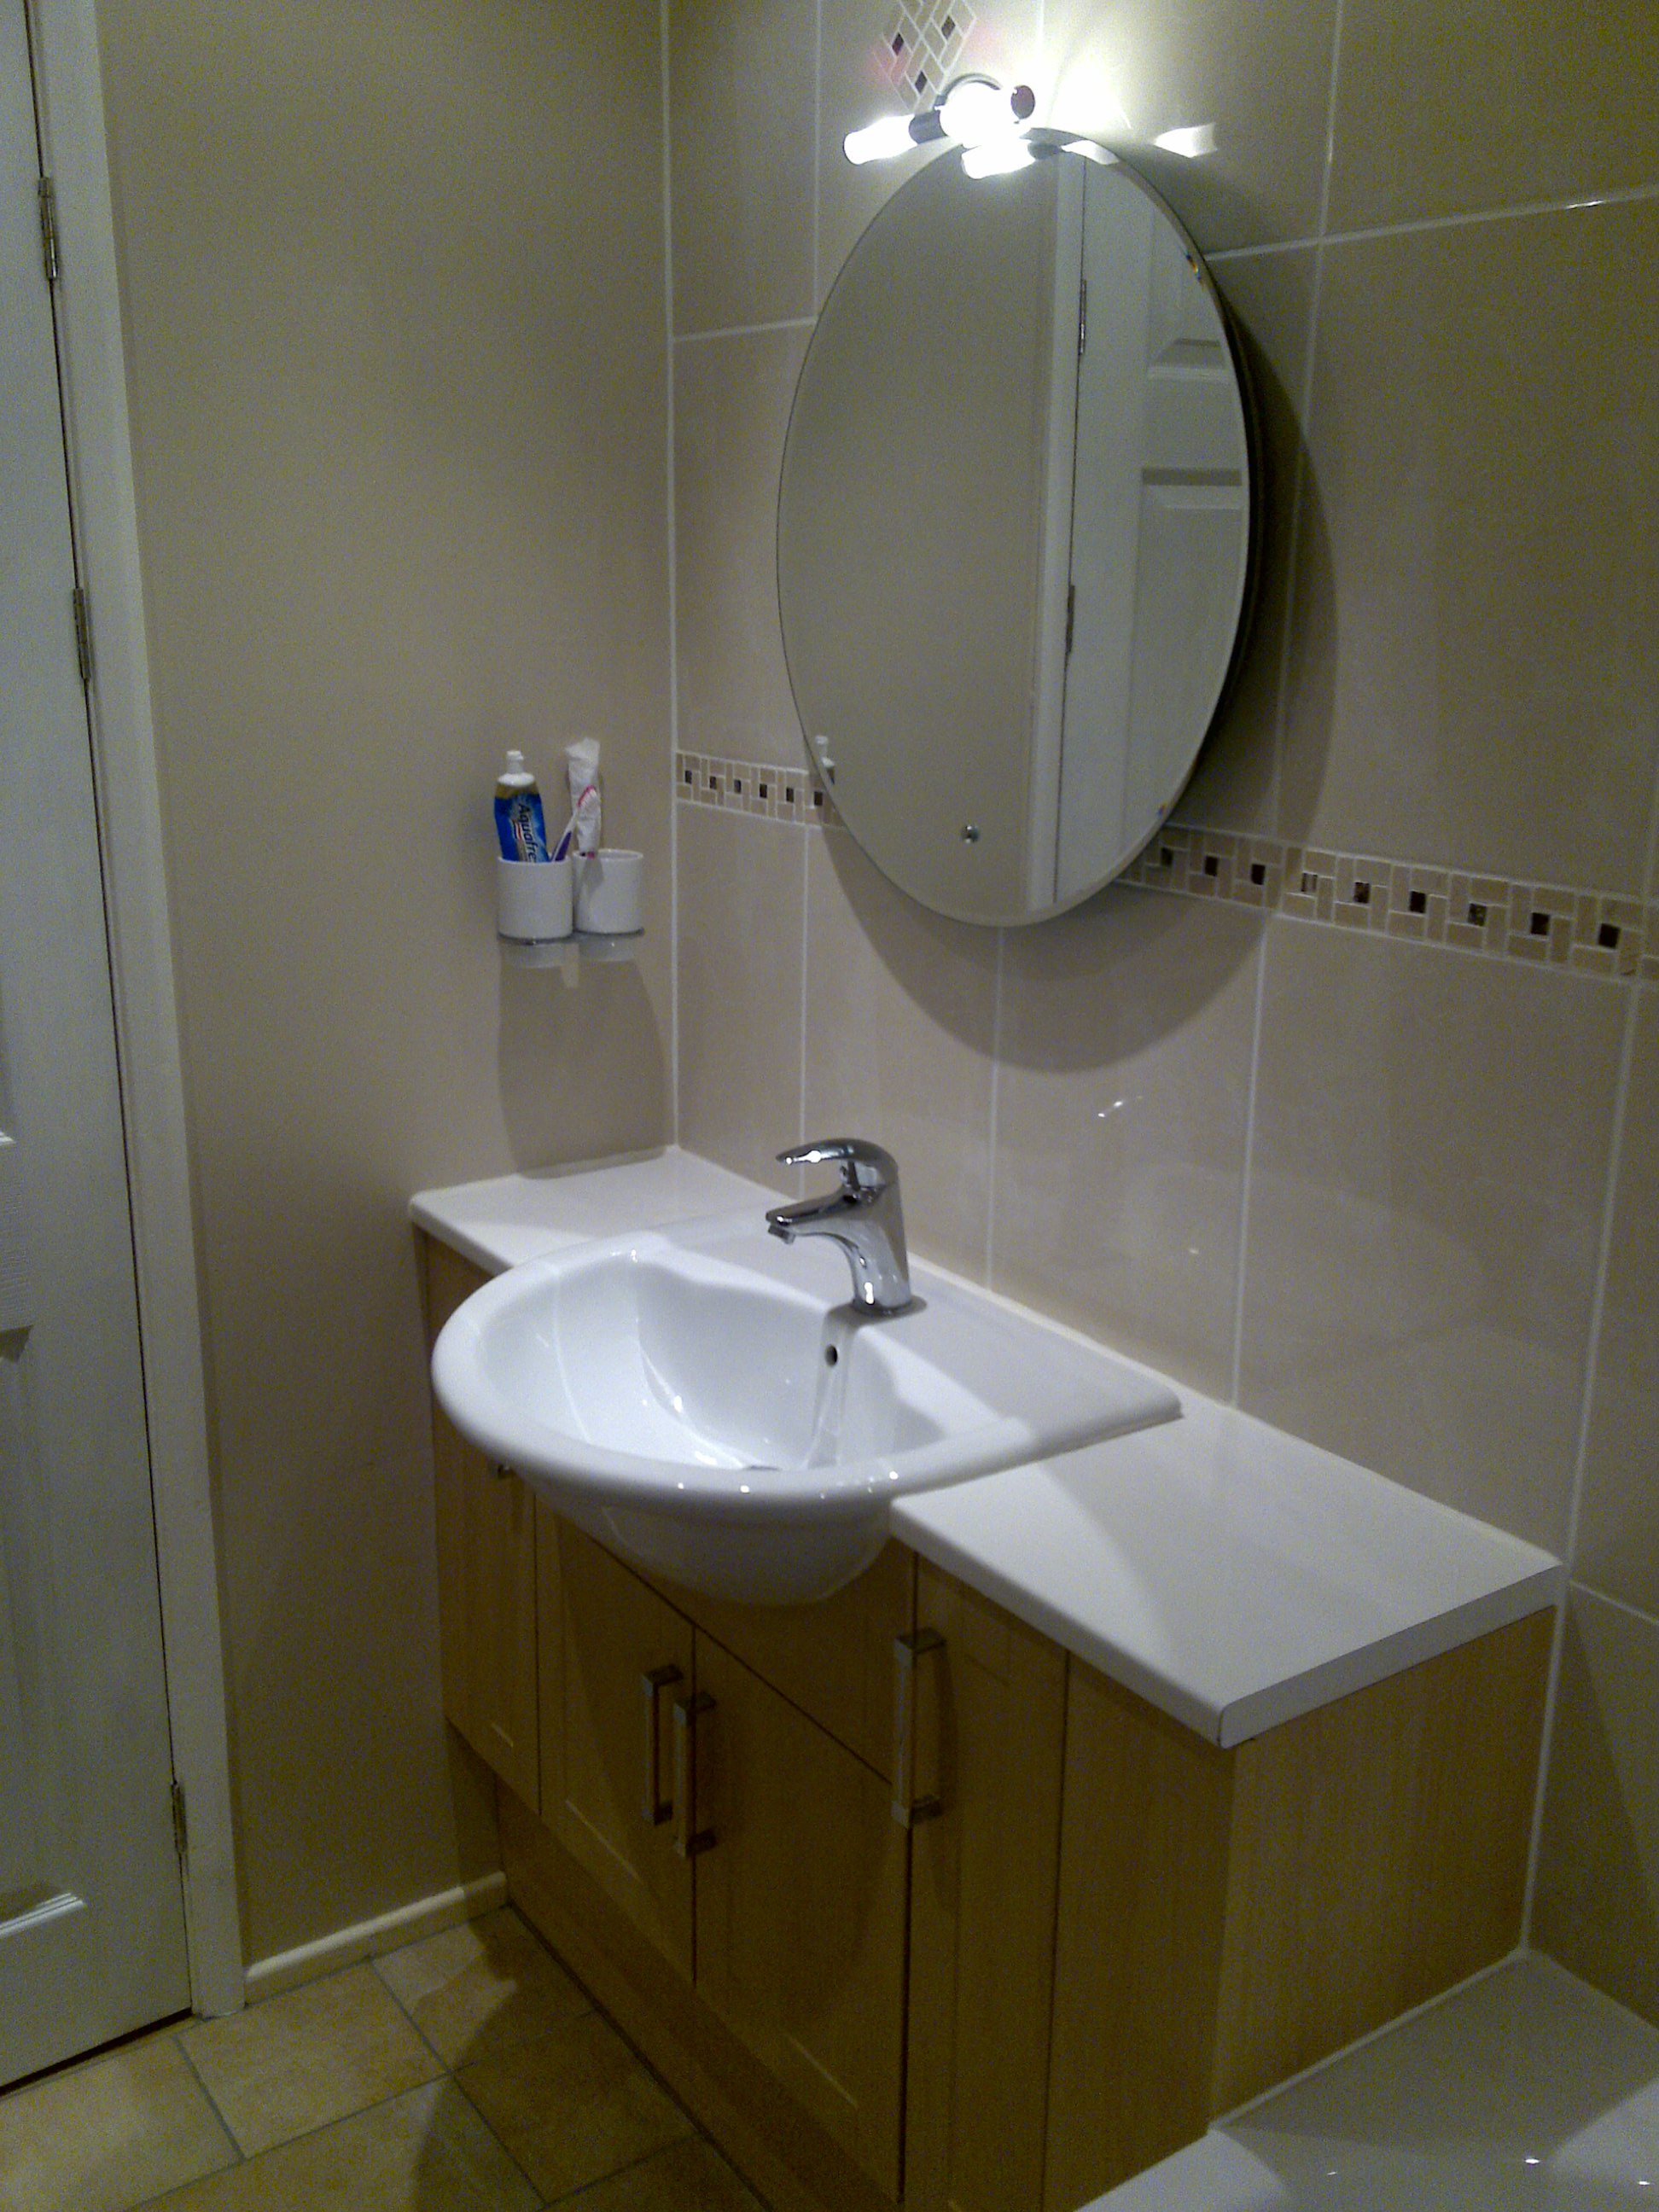 Inset Basin into Fitted Unit.